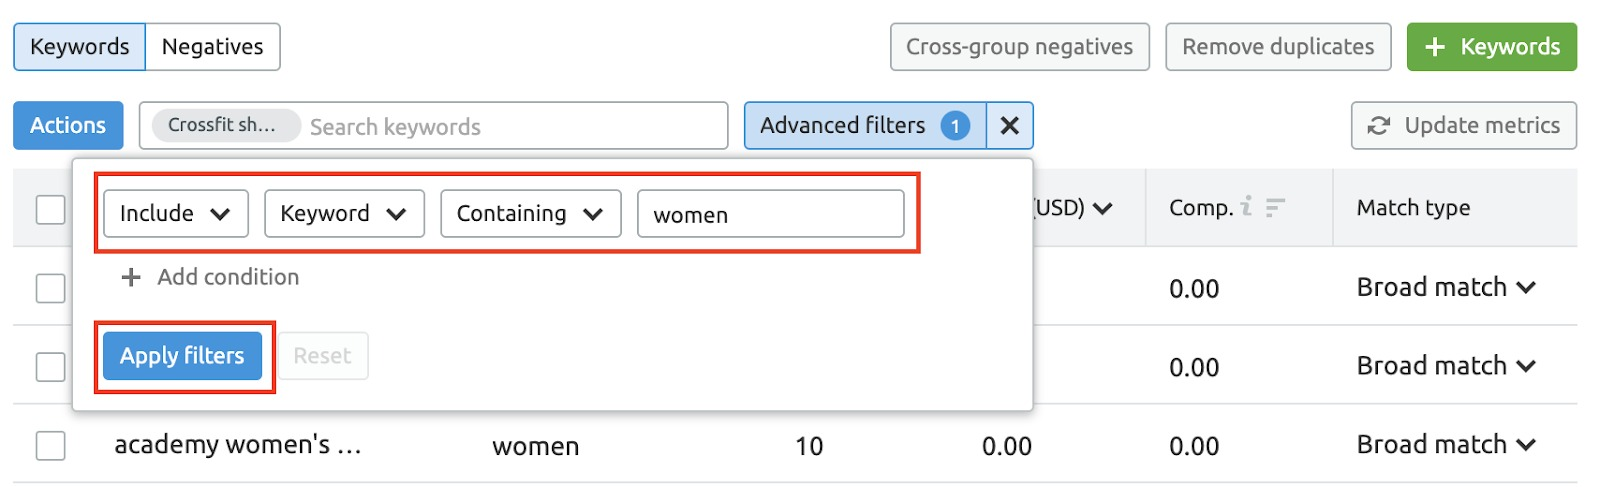 PPC Keyword Tool Recommendations image 12